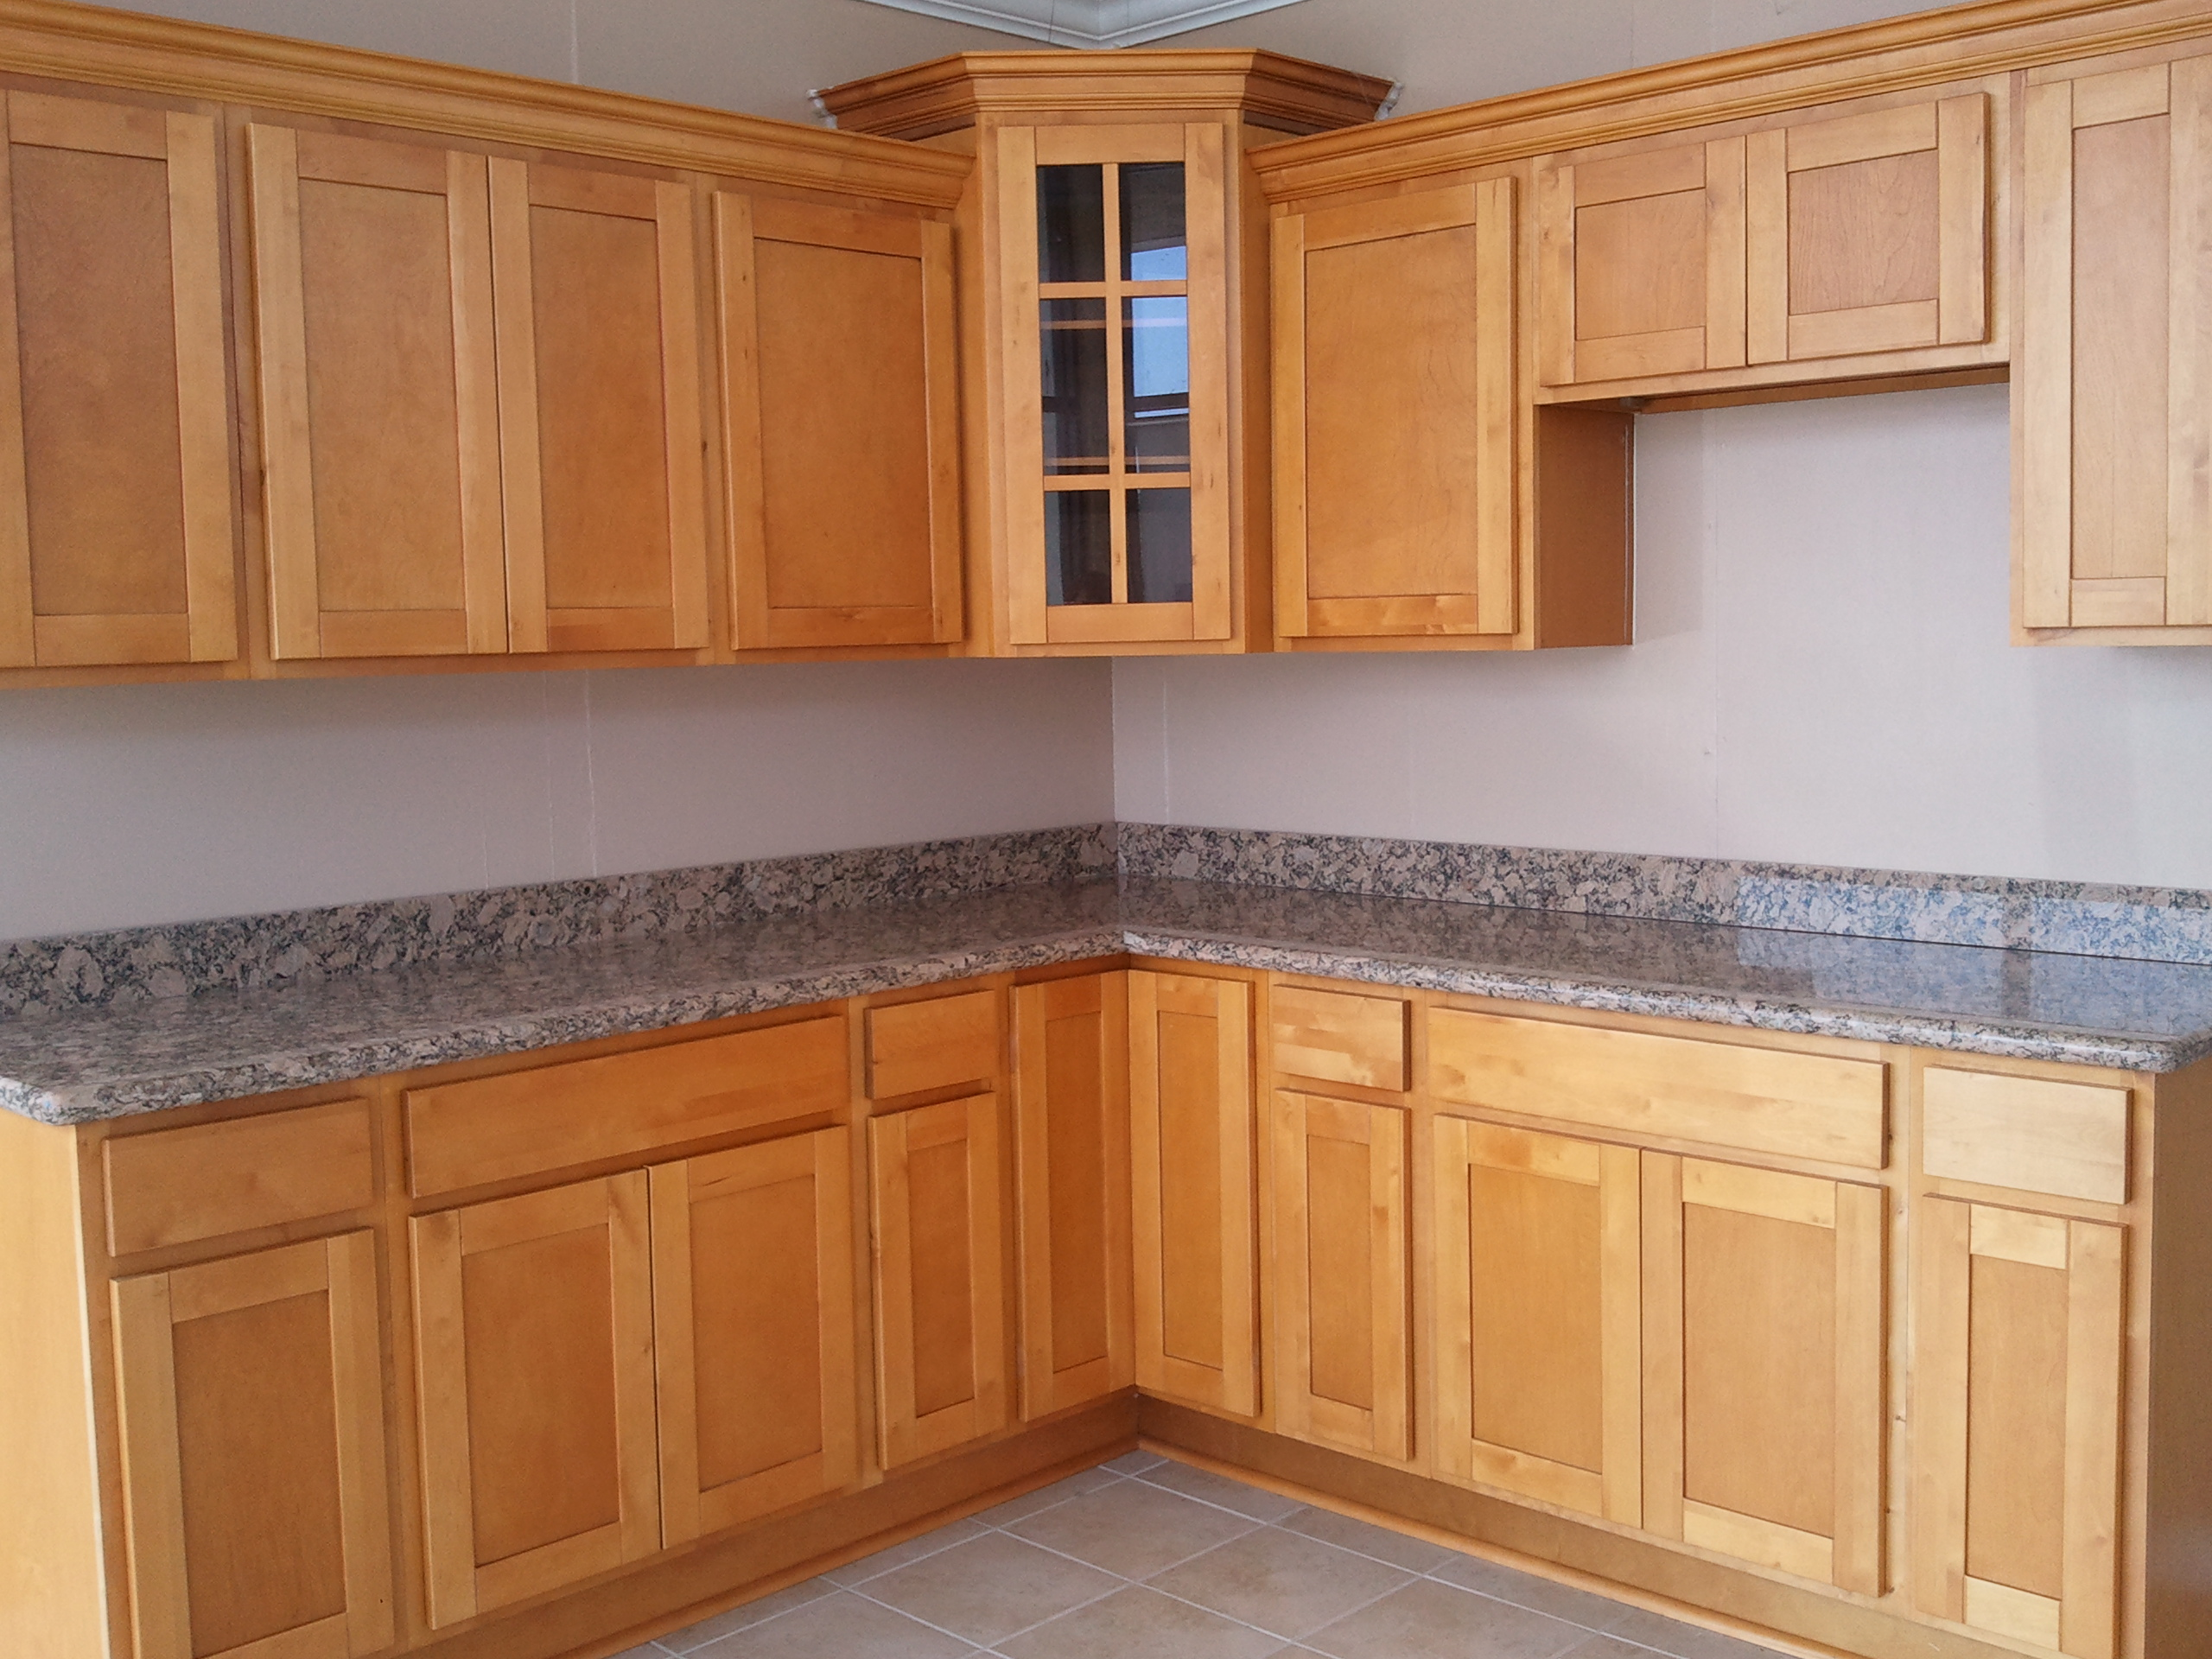 Discount kitchen cabinets sacramento for Cheaper kitchen cabinets